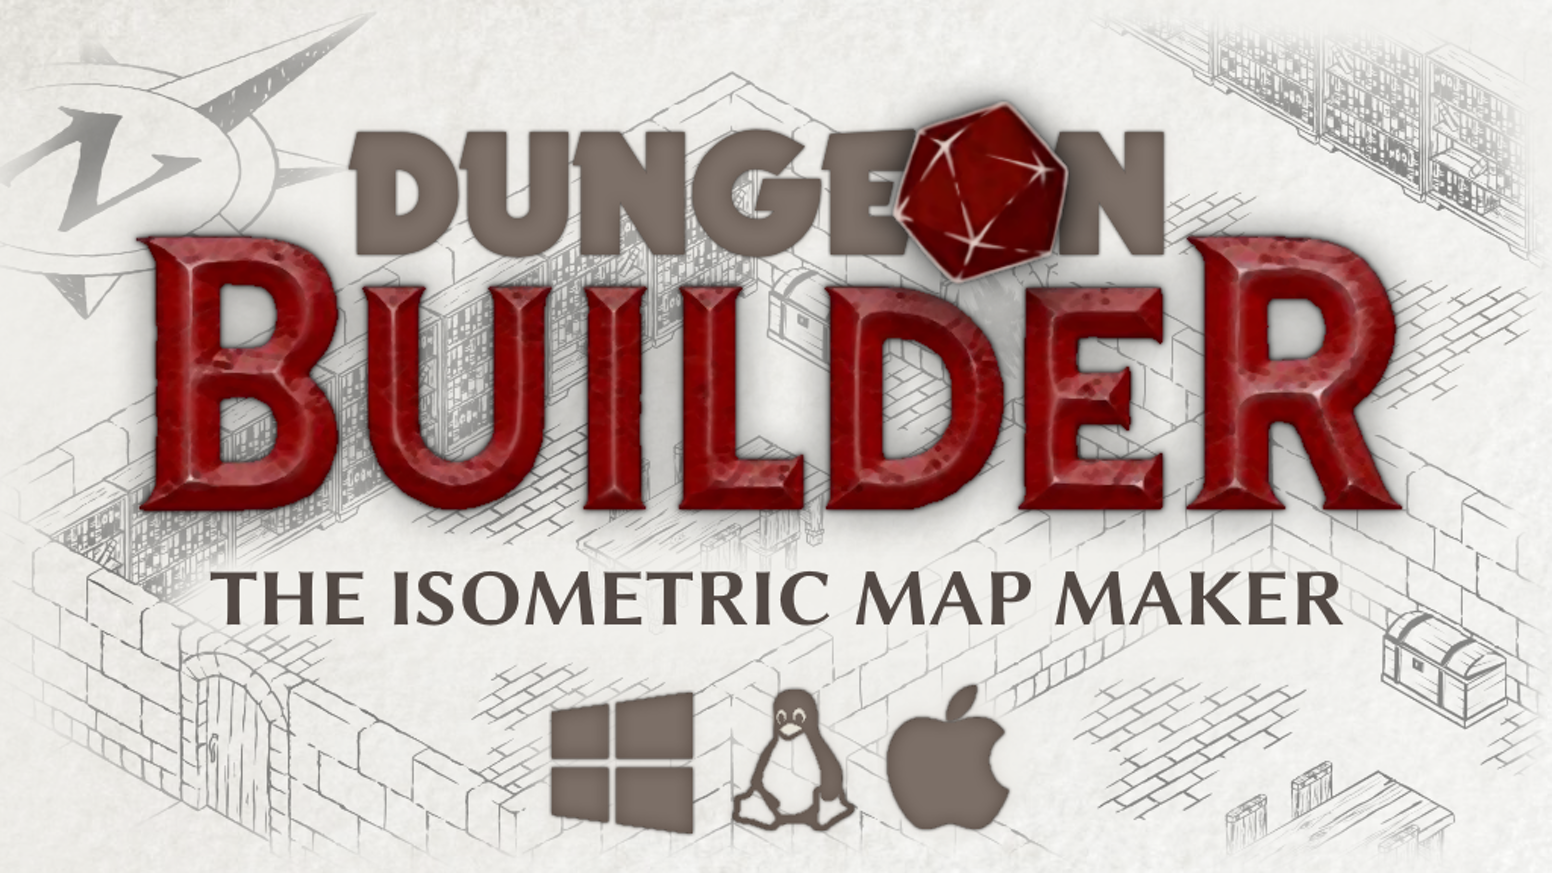 Dungeon builder an isometric map maker for role players by hobbyte were creating an isometric dungeon map maker that produces beautiful high resolution maps gumiabroncs Gallery